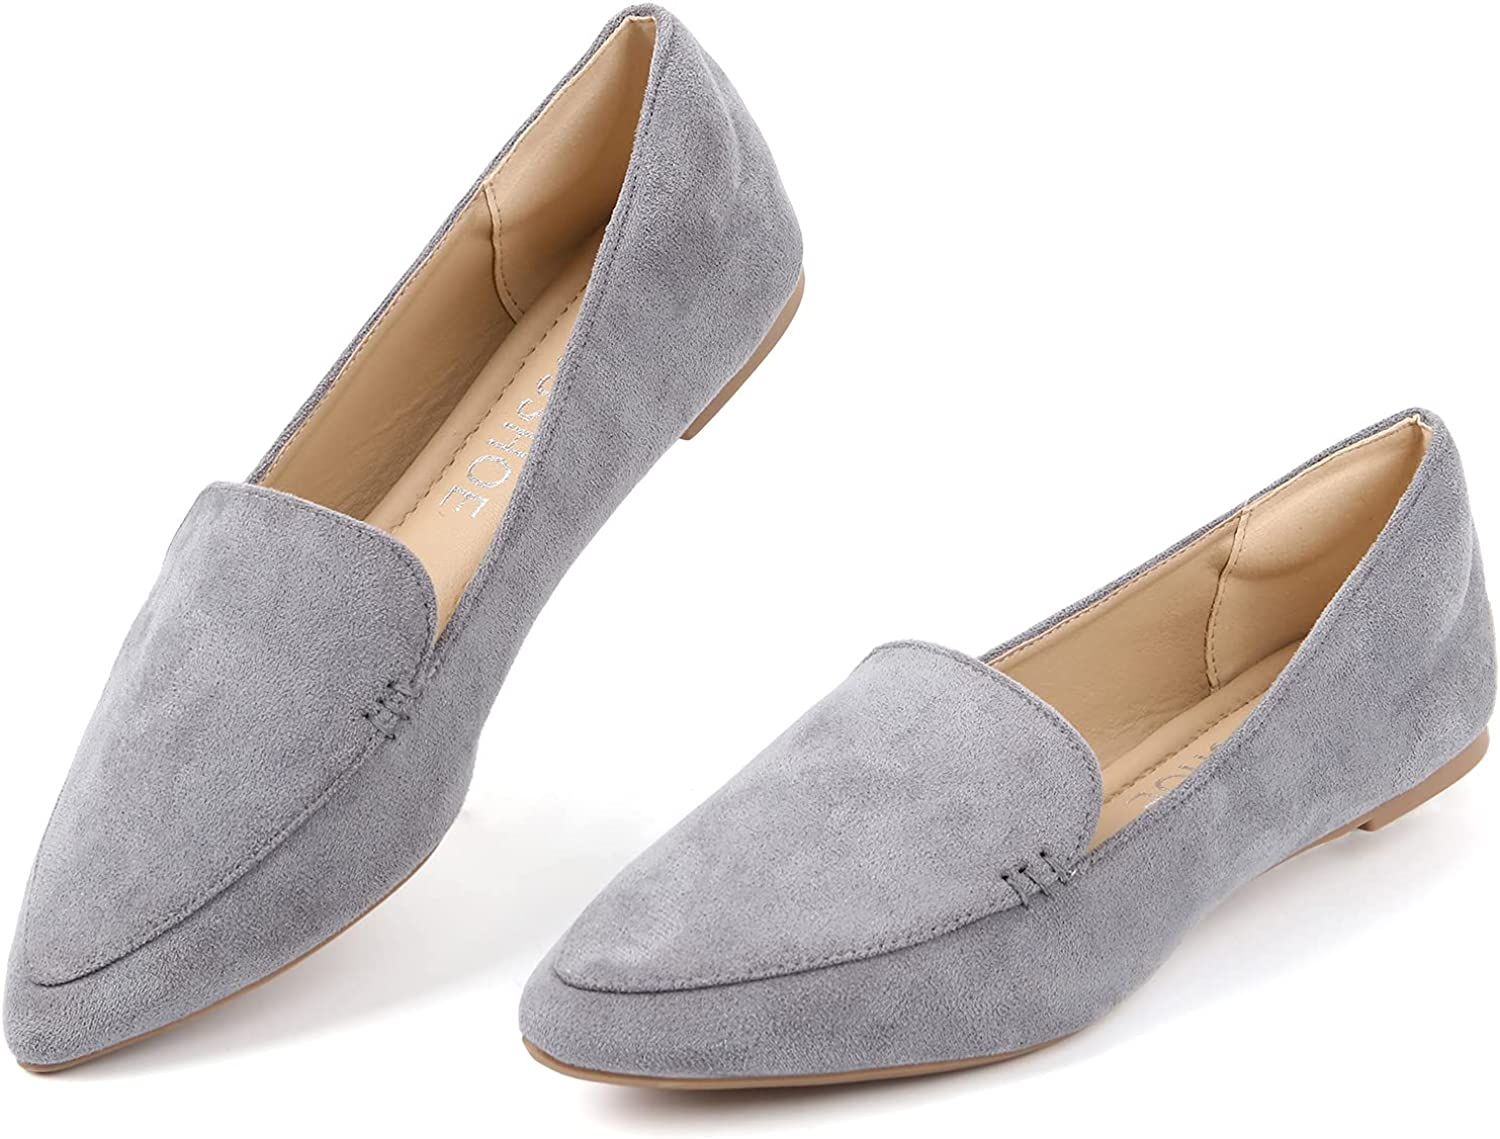 MUSSHOE Loafers for Women Comfortable Pointed Inexpensive Toe Women's Loafer Japan's largest assortment